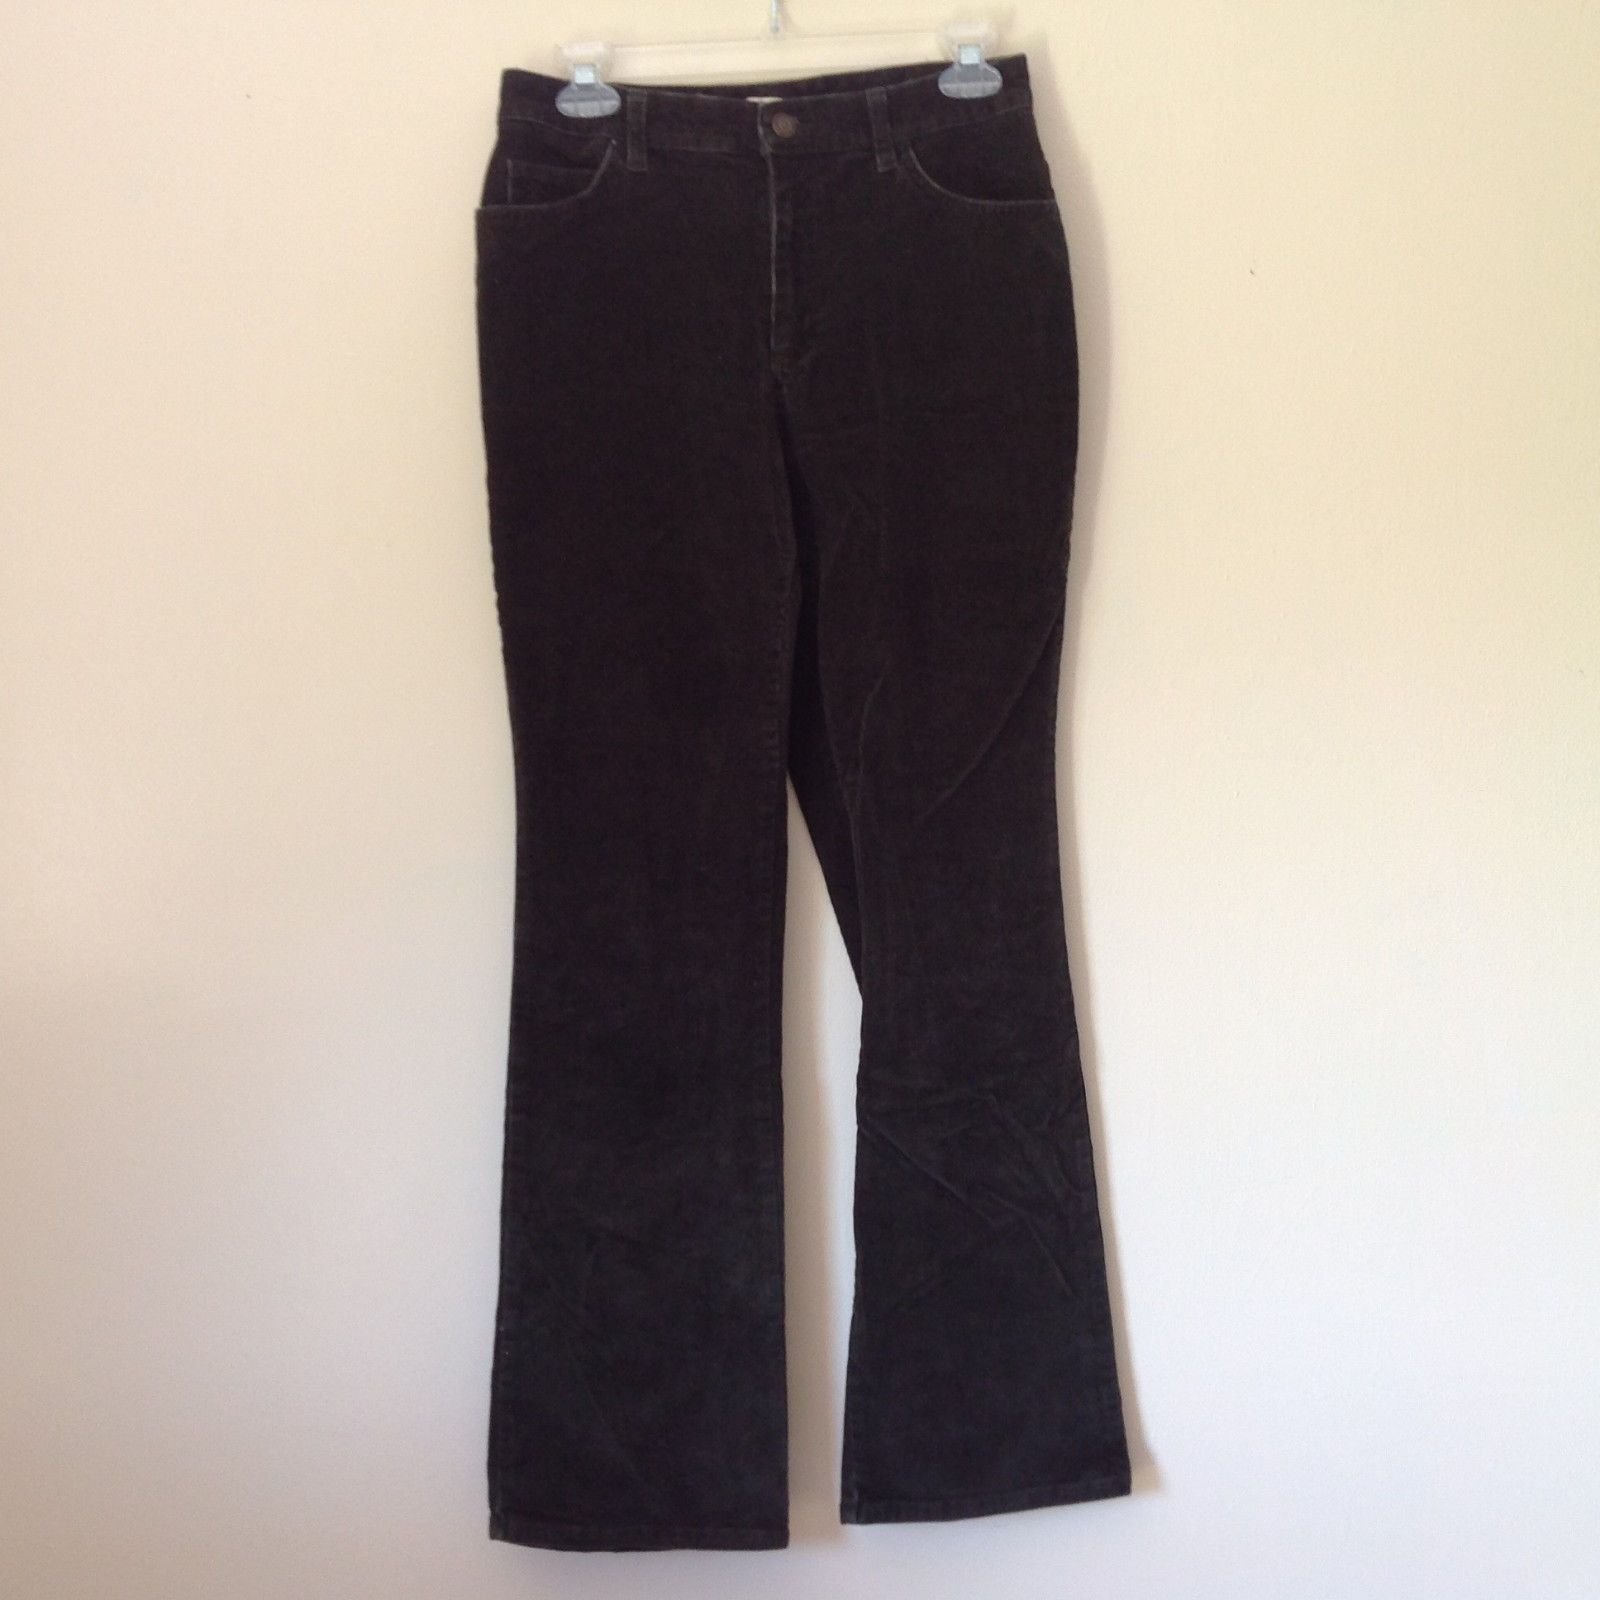 Casual Green Pants by St Johns Bay Stretch Front and Back Pockets Size 6